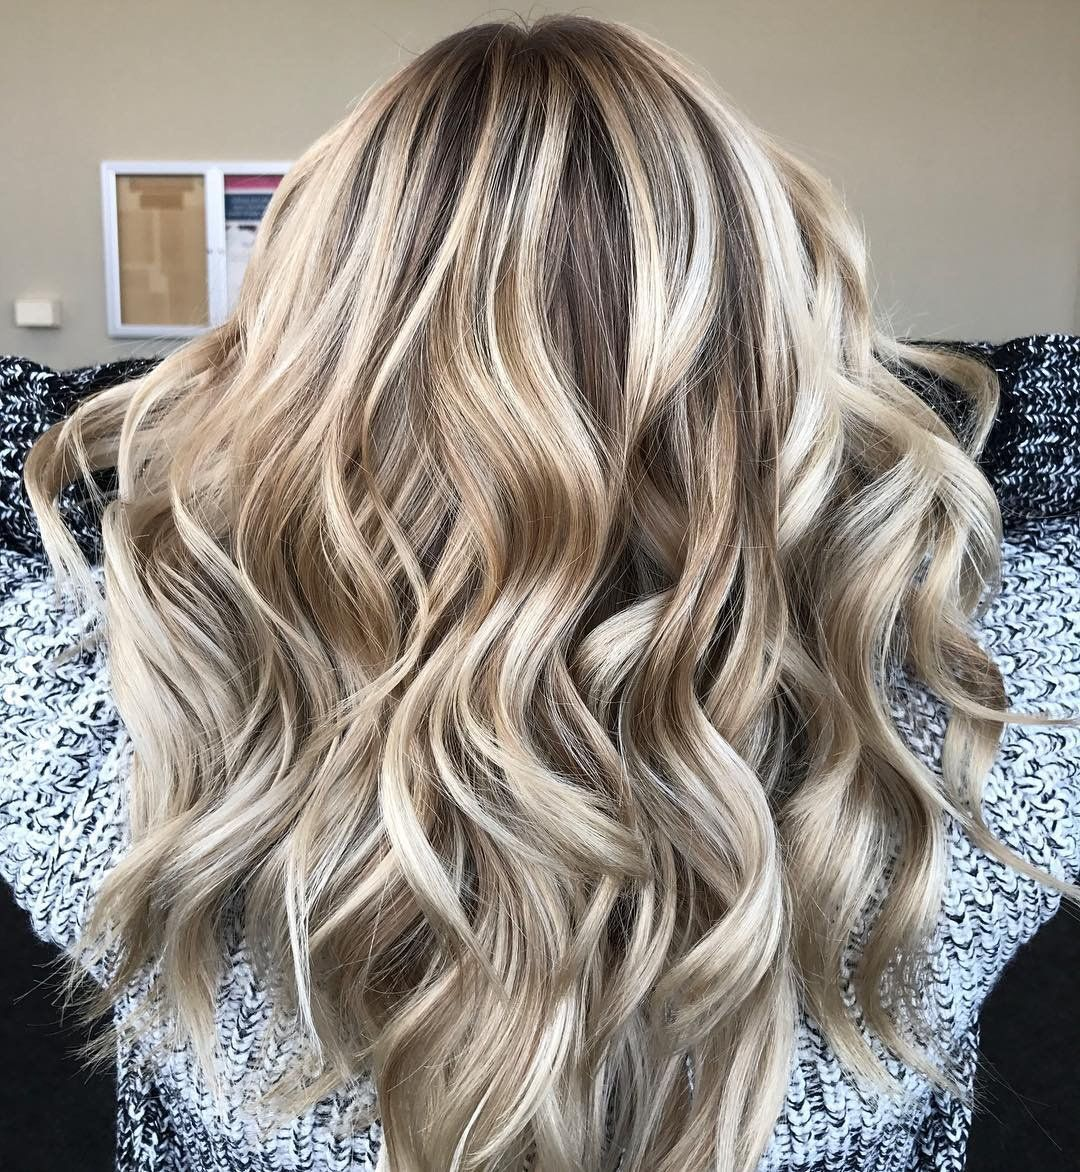 9 Fall Hair Color Trends For Blondes You Ll Be Seeing Everywhere Popular Hair Color Fall Hair Color Trends Top Hair Stylist